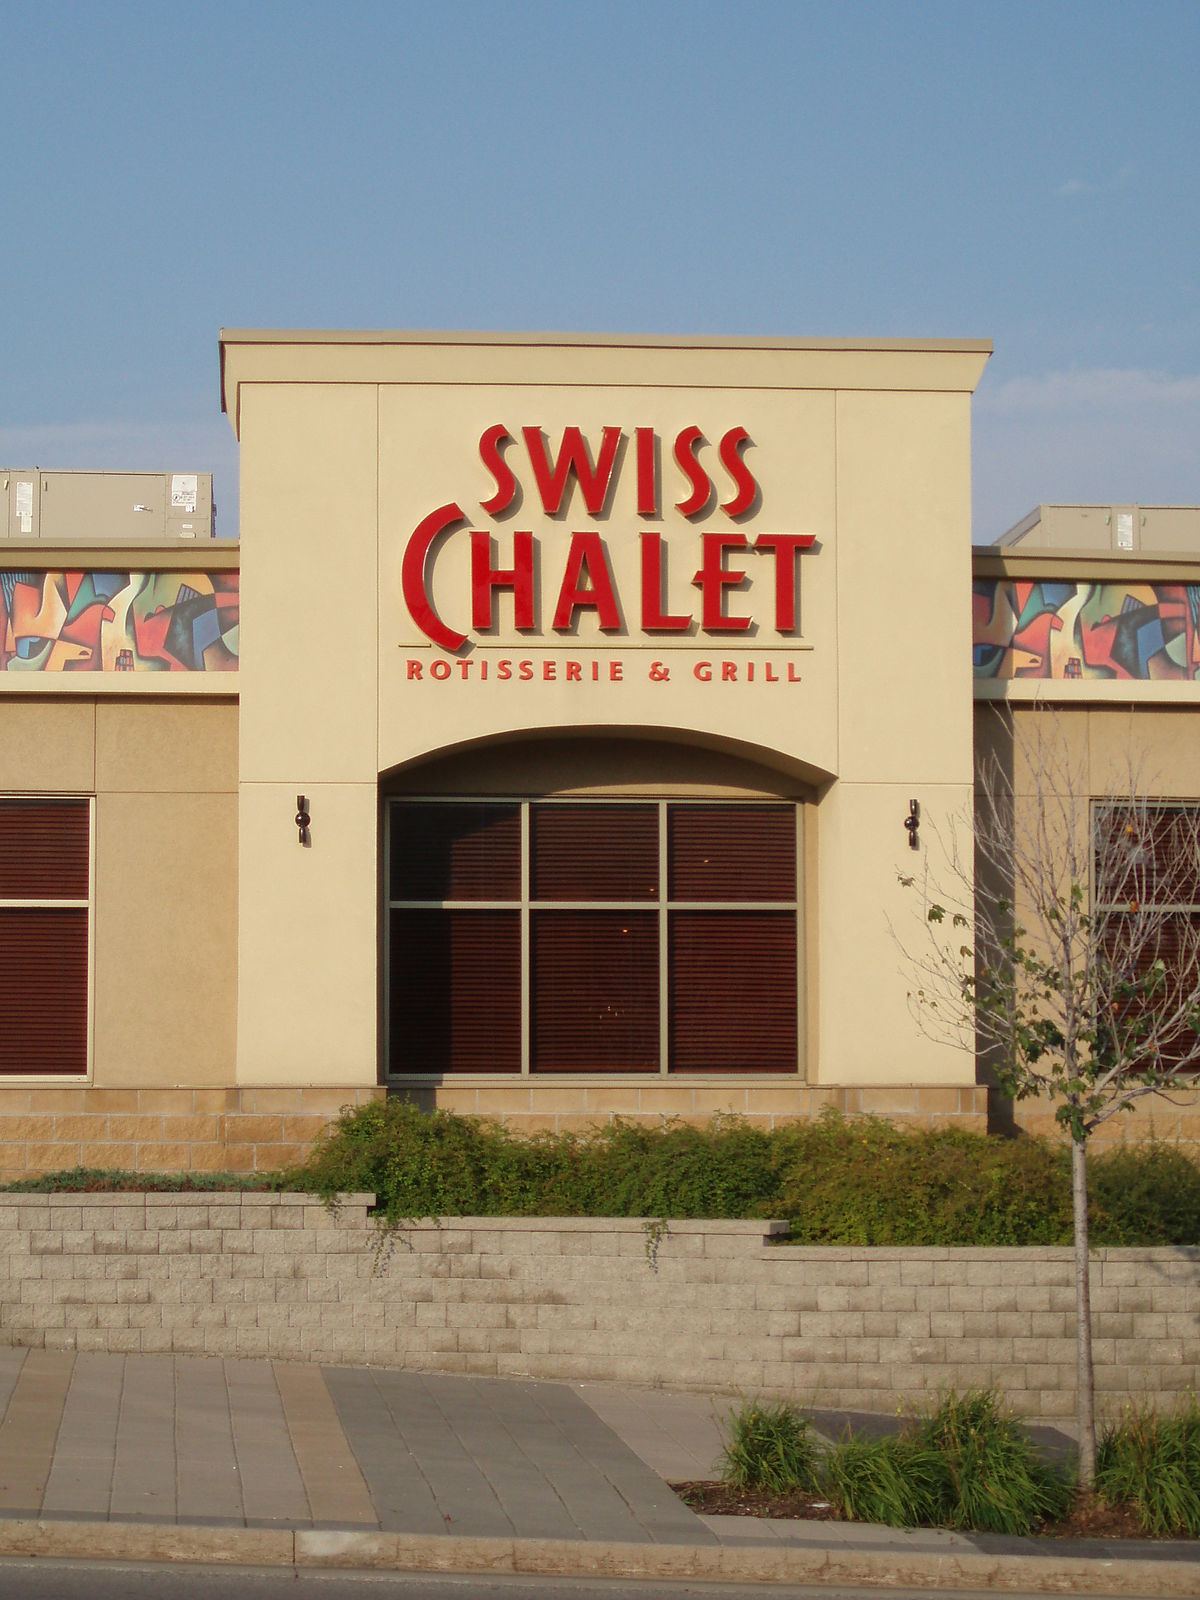 Is Swiss Chalet Fast Food